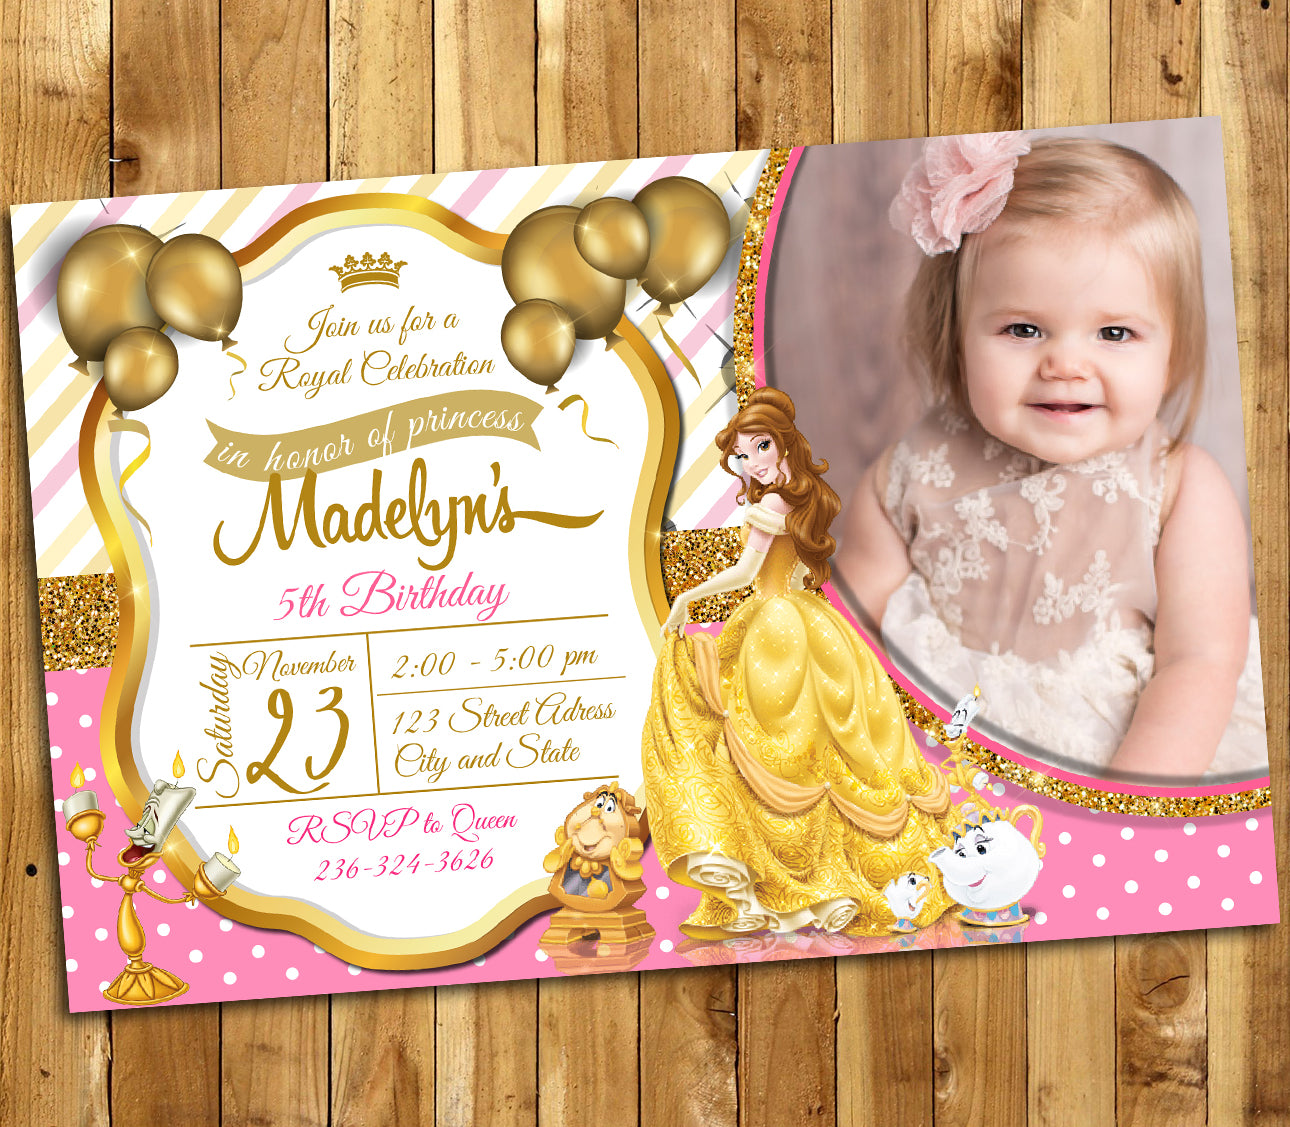 Beauty and the beast invitation beauty and the beast birthday beauty and the beast invitation beauty and the beast birthday princess belle invites filmwisefo